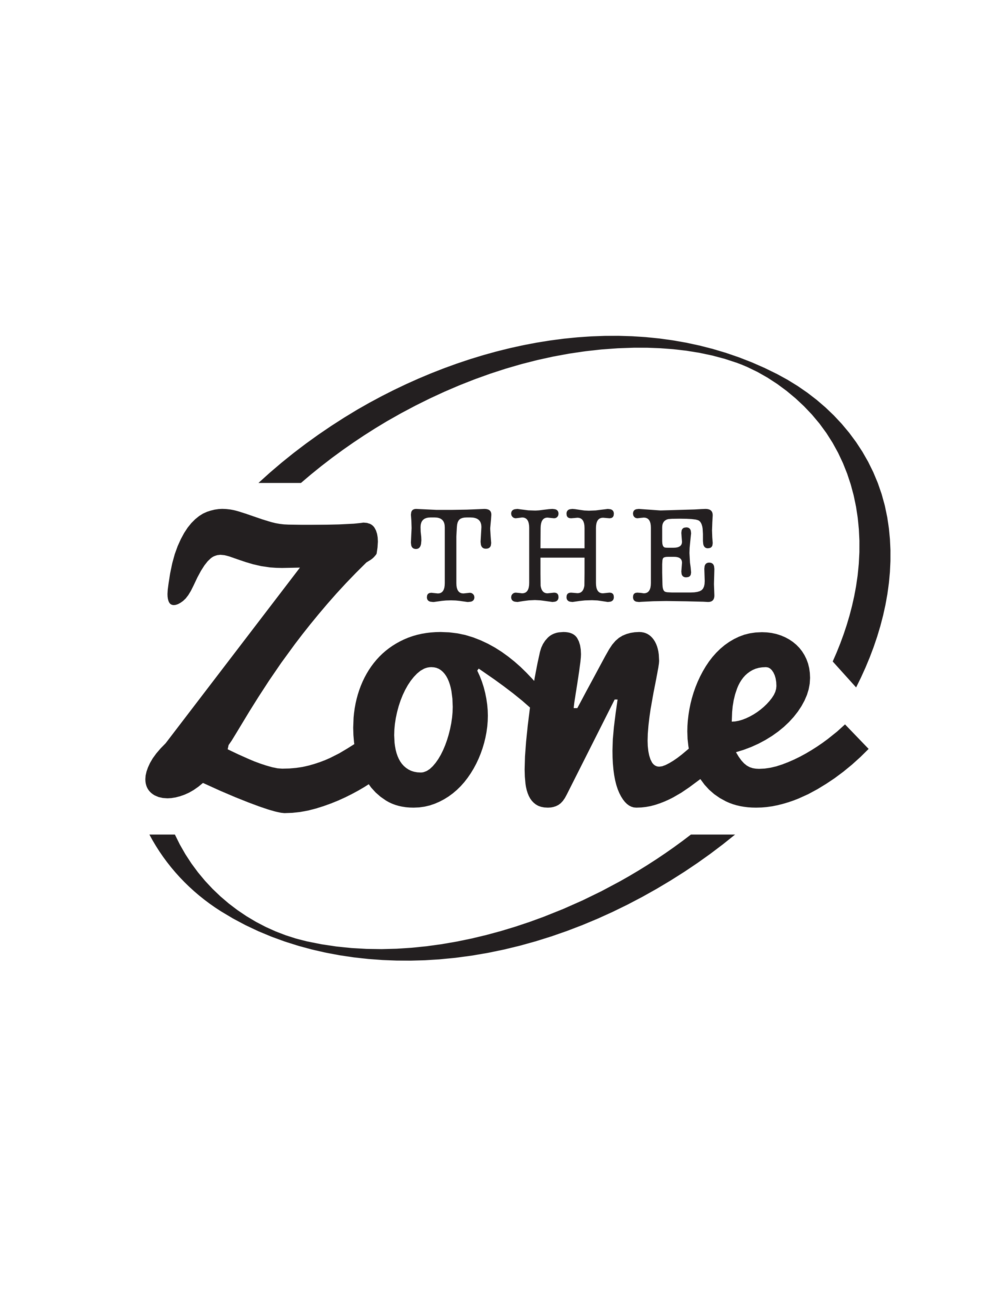 Zone Logo png.png